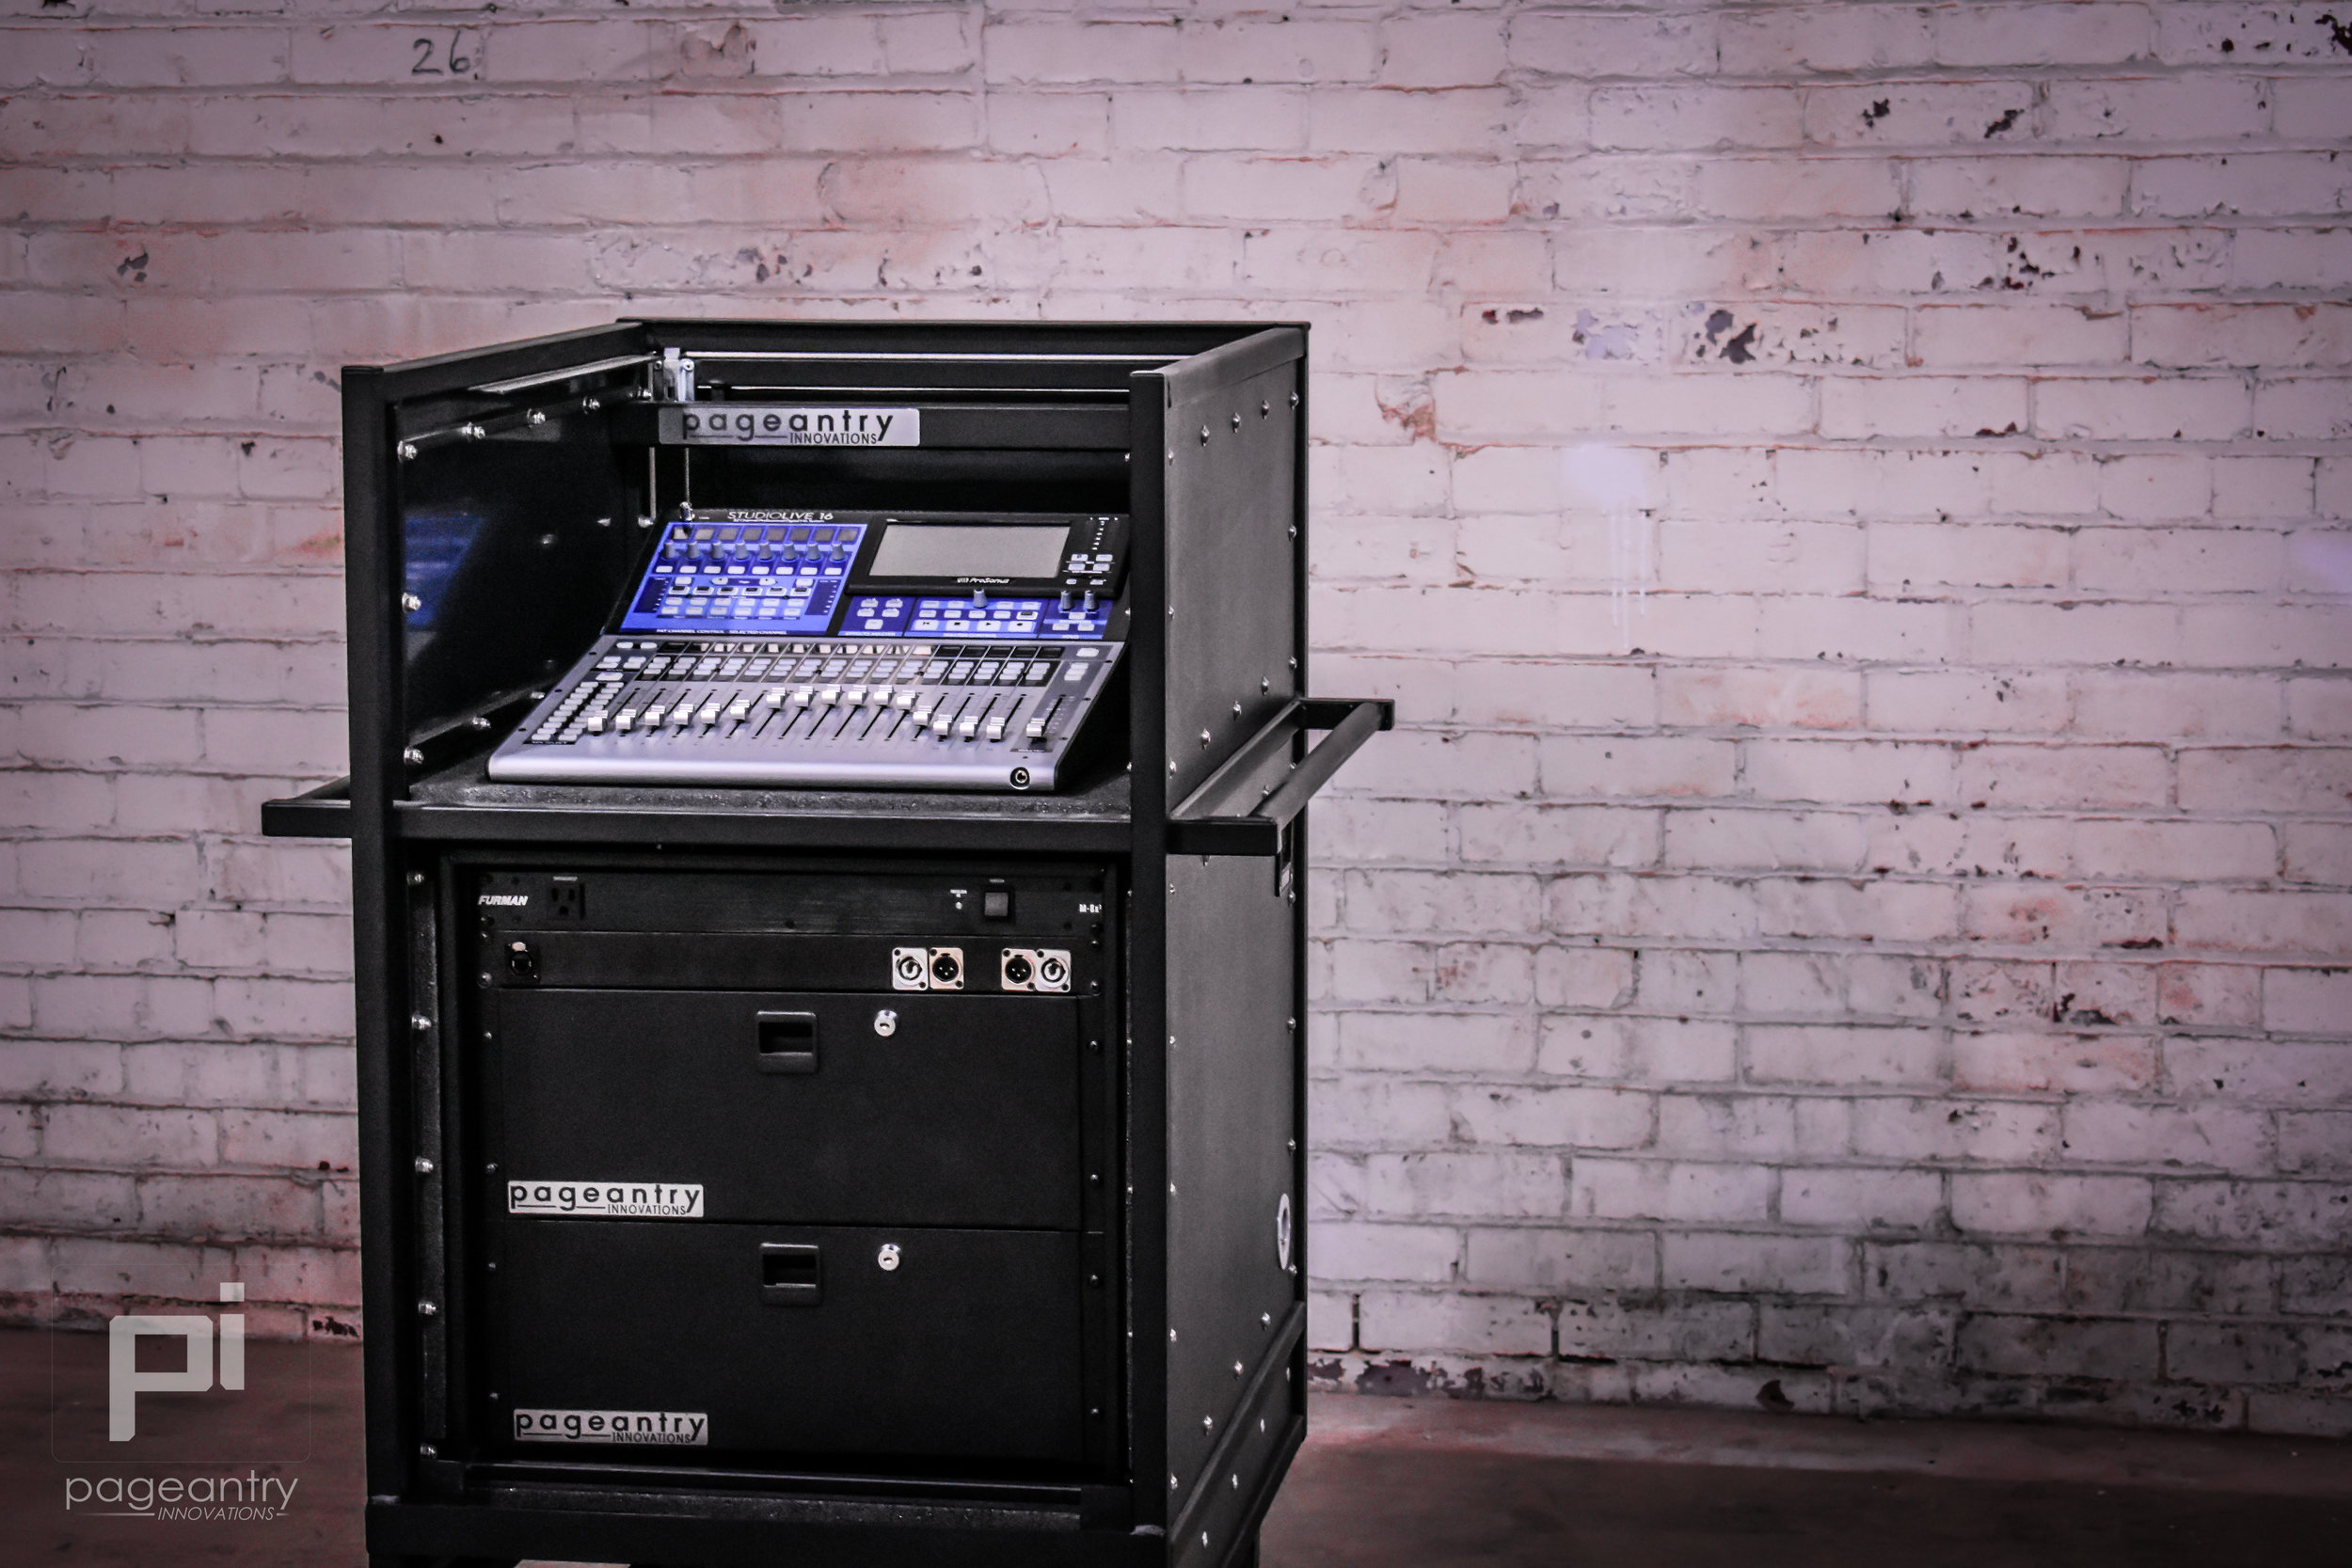 The 10u rack is housing a custom rack panel, power conditioner, & two rack drawers.